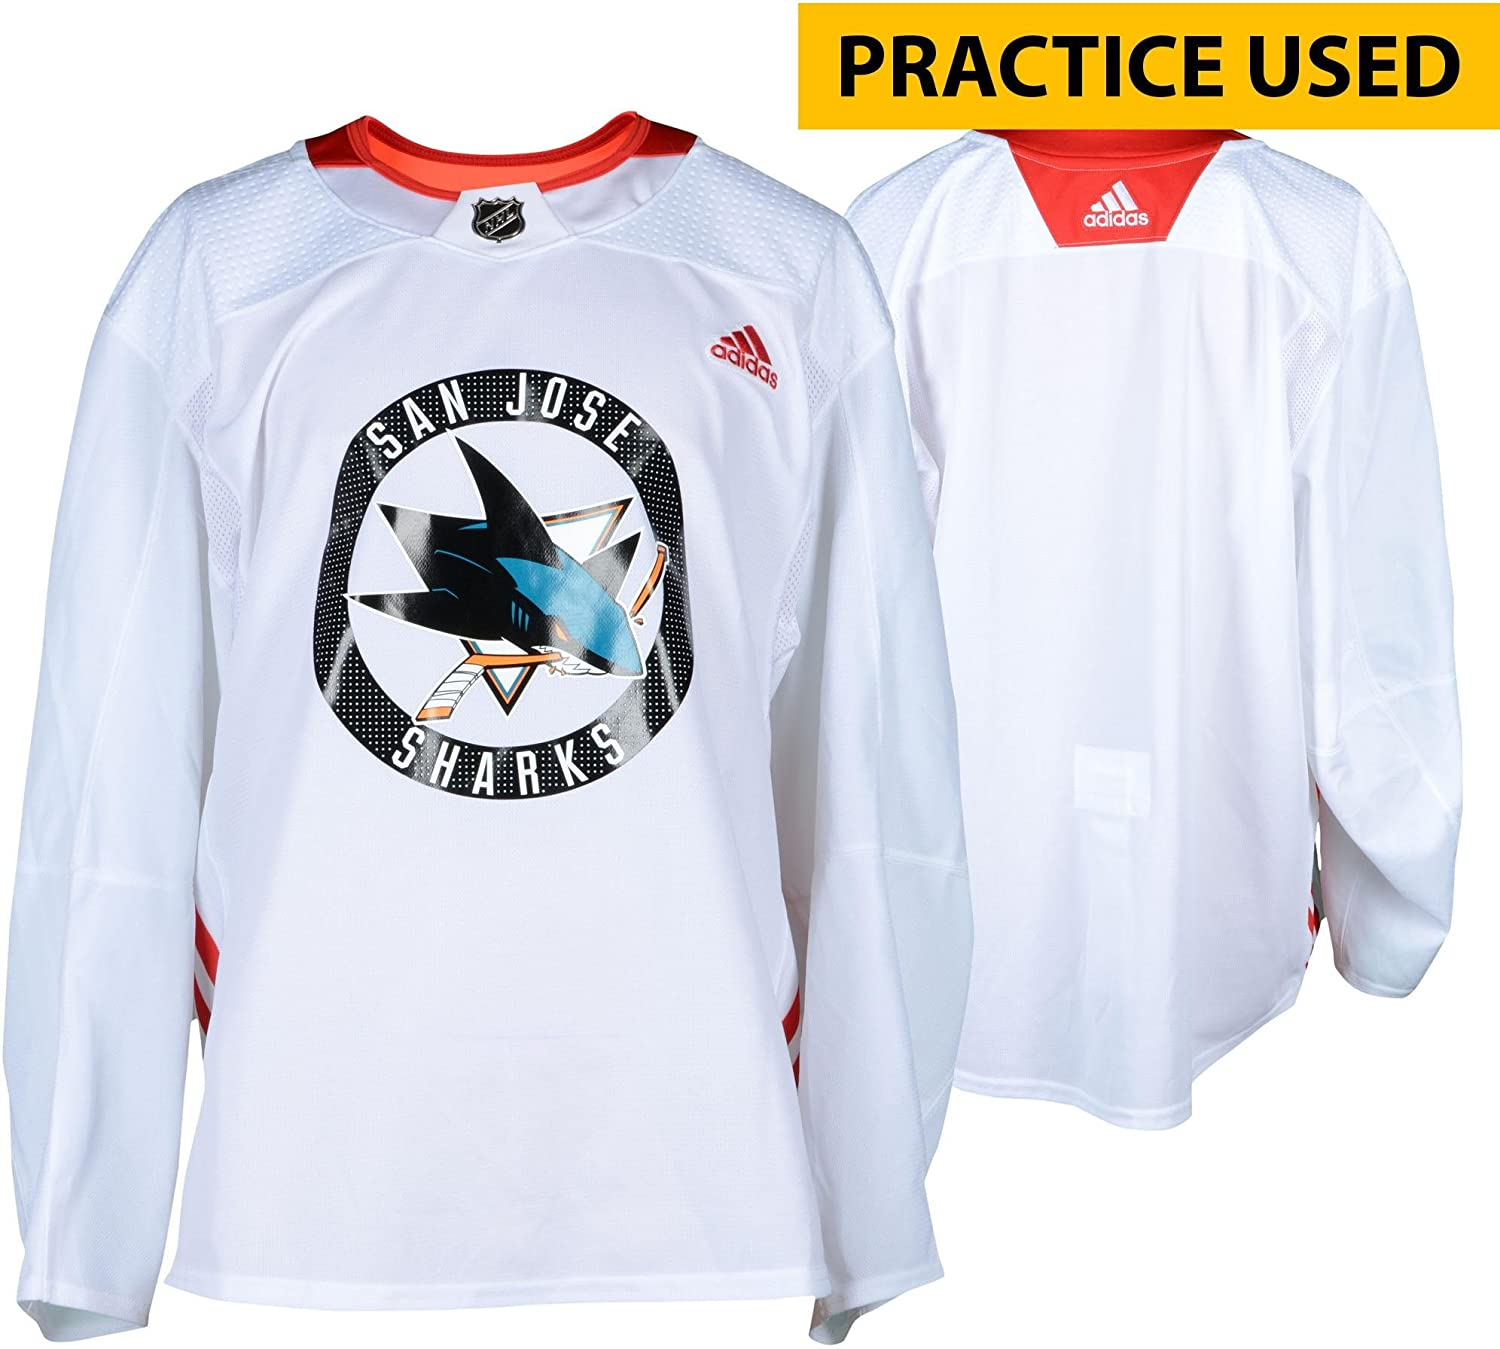 ... canada san jose sharks practice used white adidas jersey from practice  of the 2017 18 nhl d4a6d2aa8